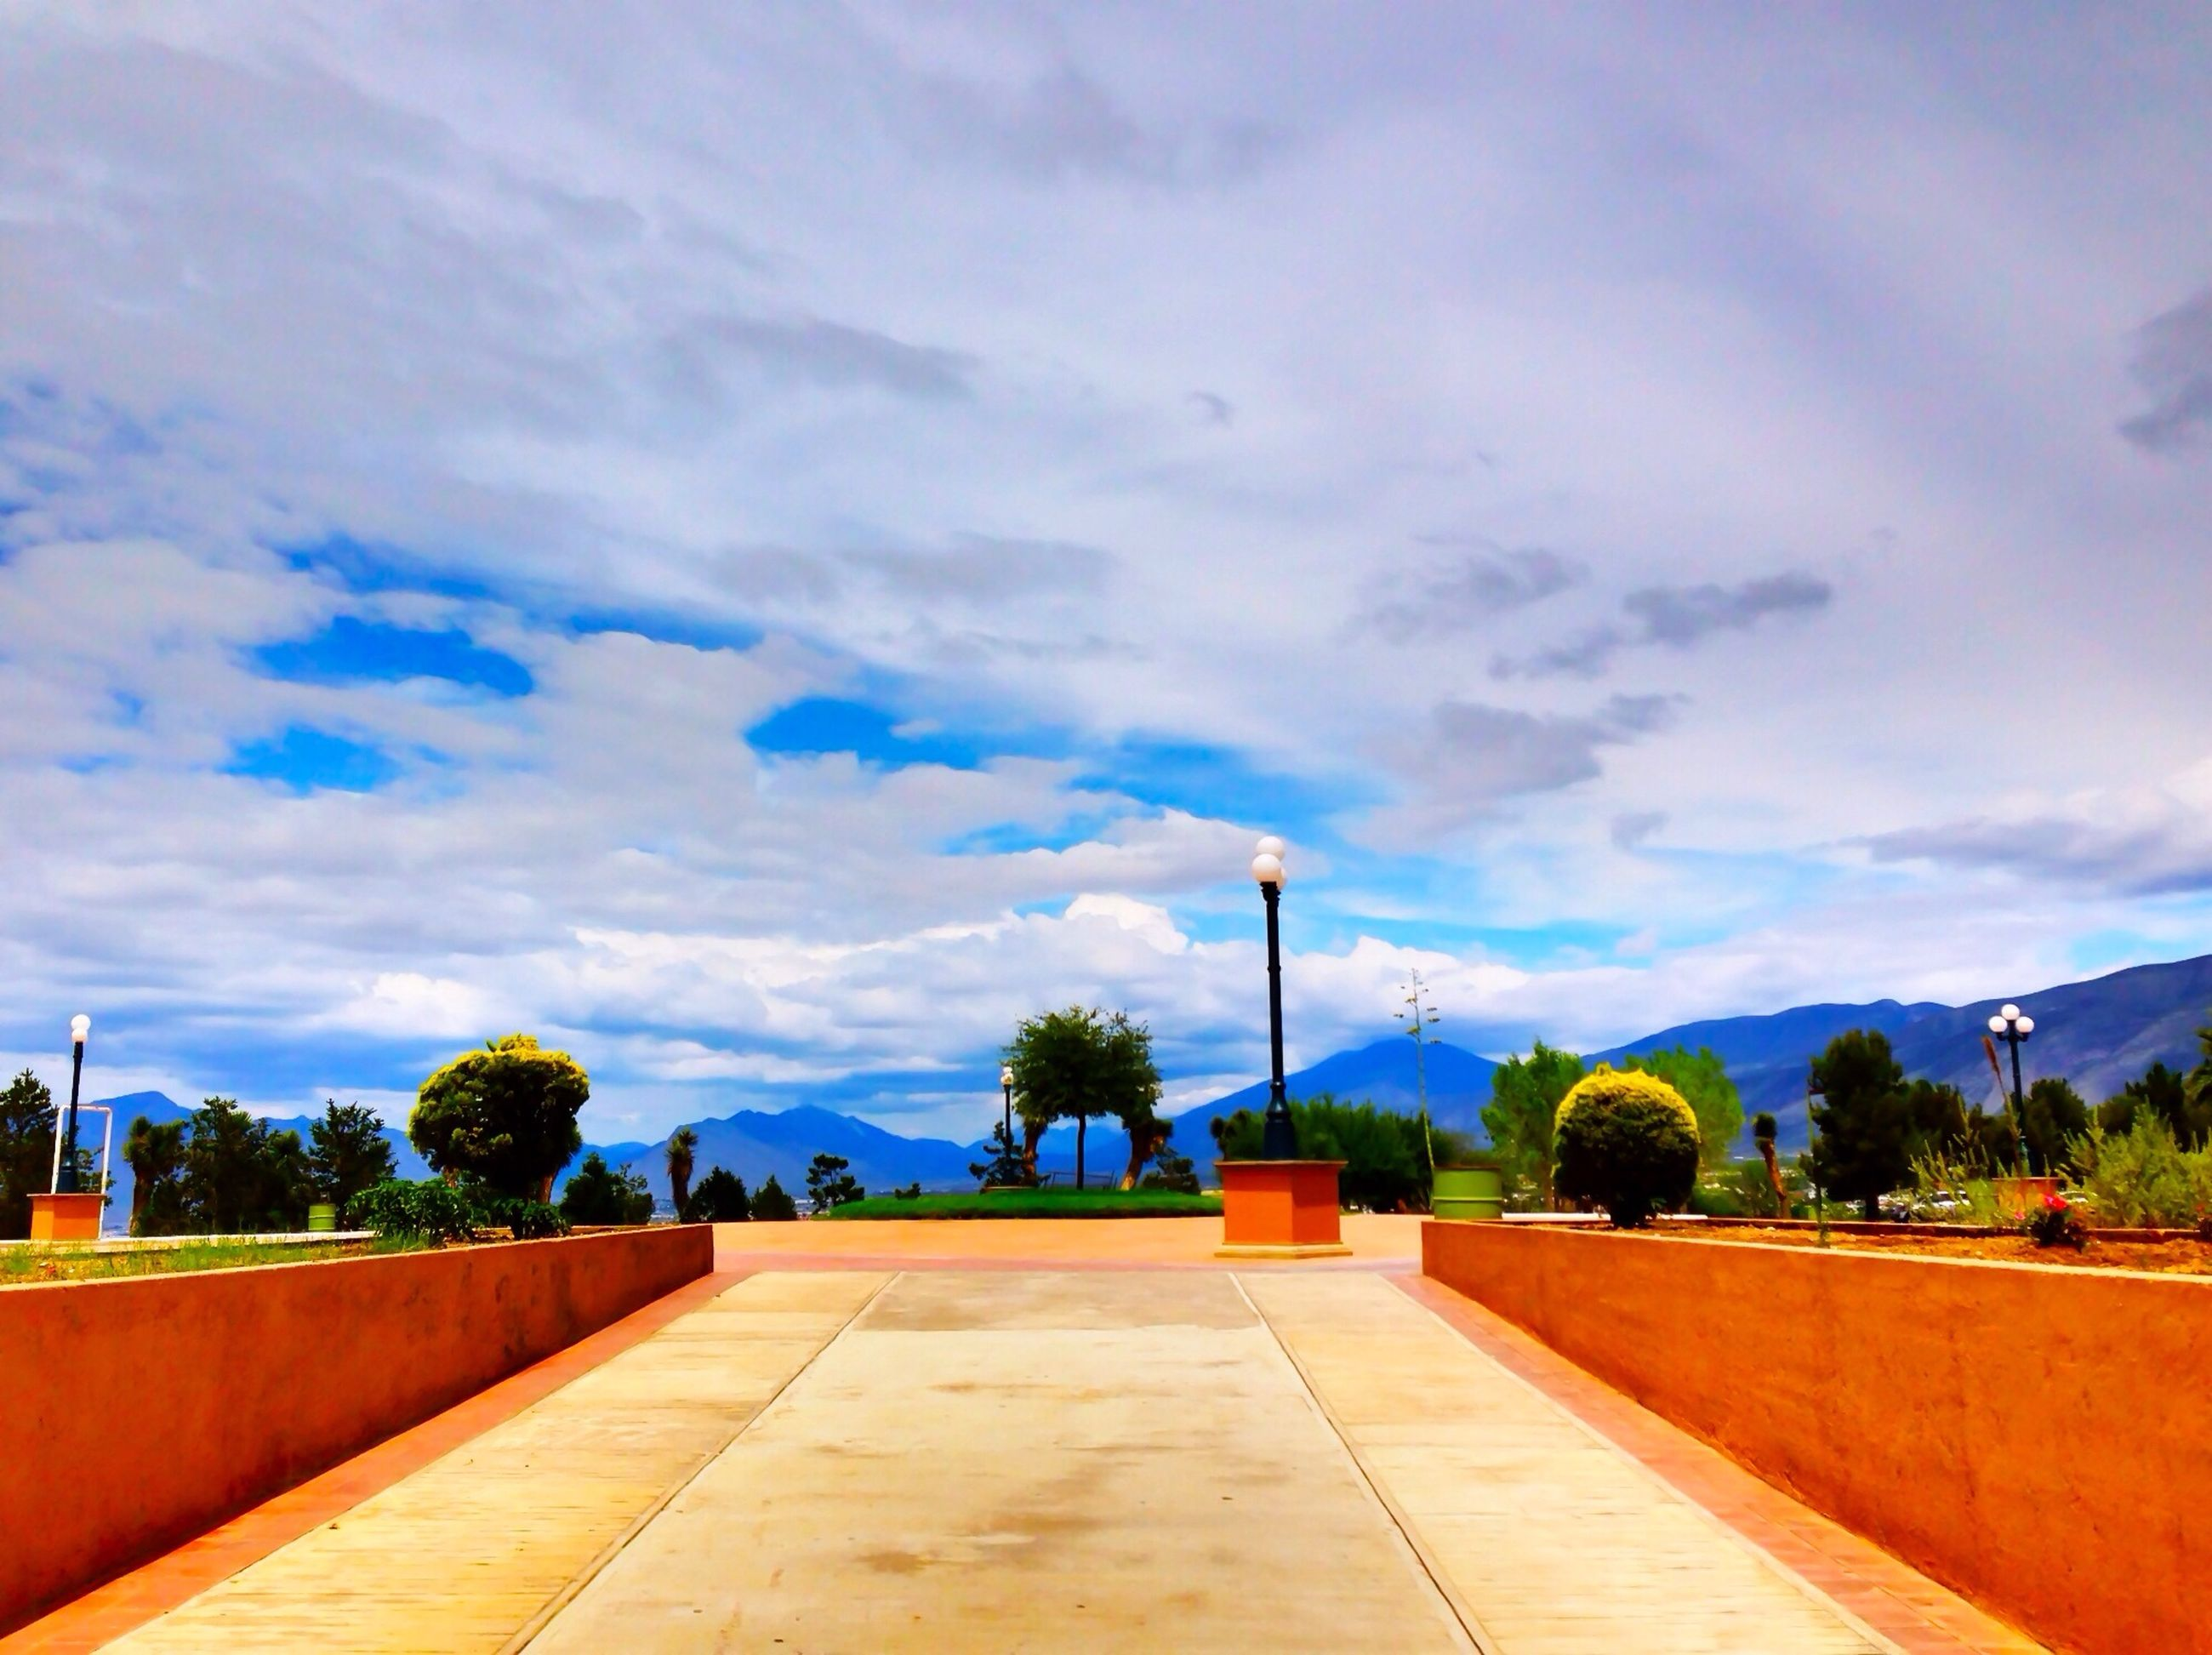 sky, tree, cloud - sky, the way forward, cloud, tranquility, tranquil scene, blue, nature, scenics, cloudy, beauty in nature, built structure, footpath, empty, road, palm tree, railing, outdoors, architecture